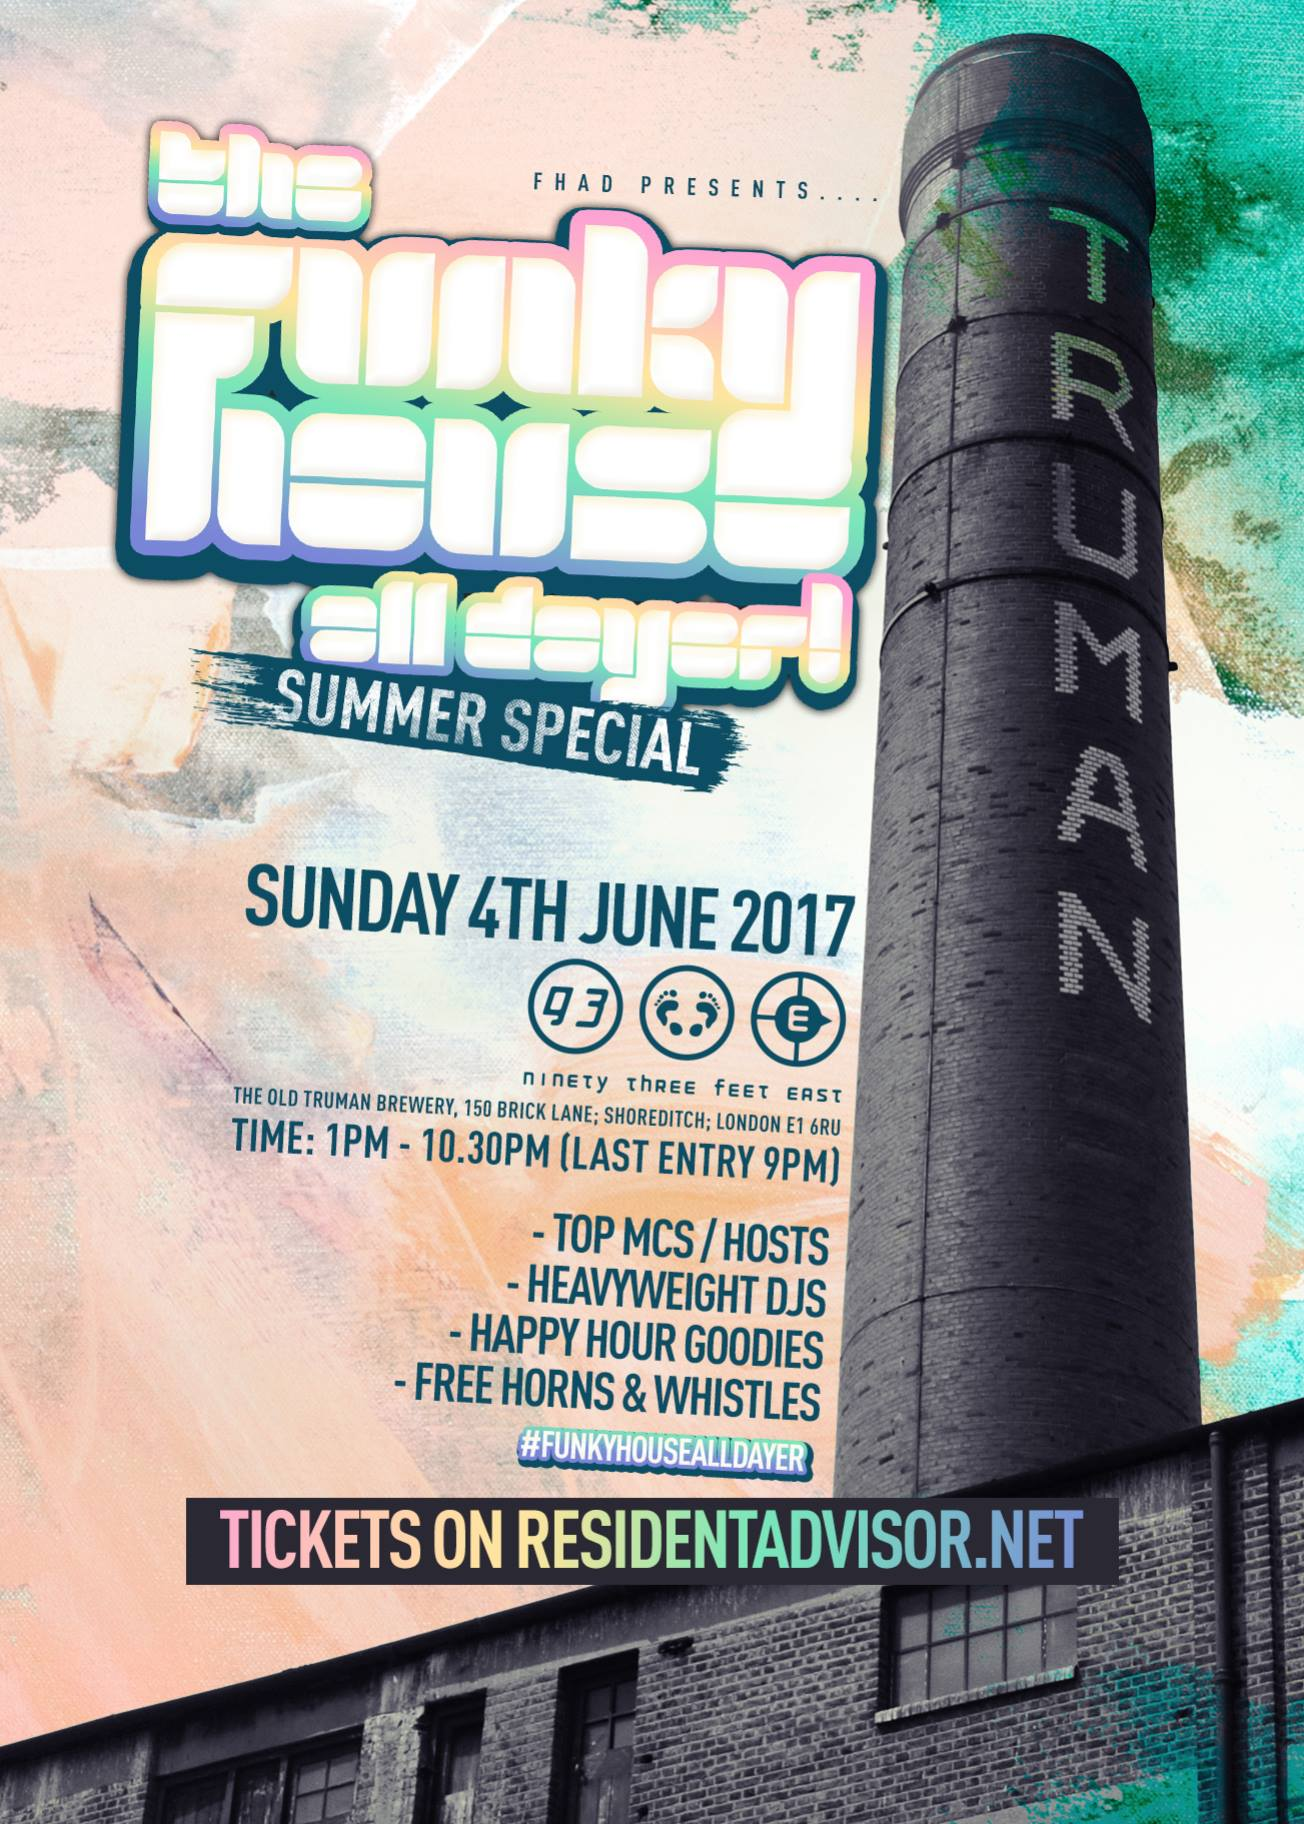 The Funky House All Dayer (Summer Special)